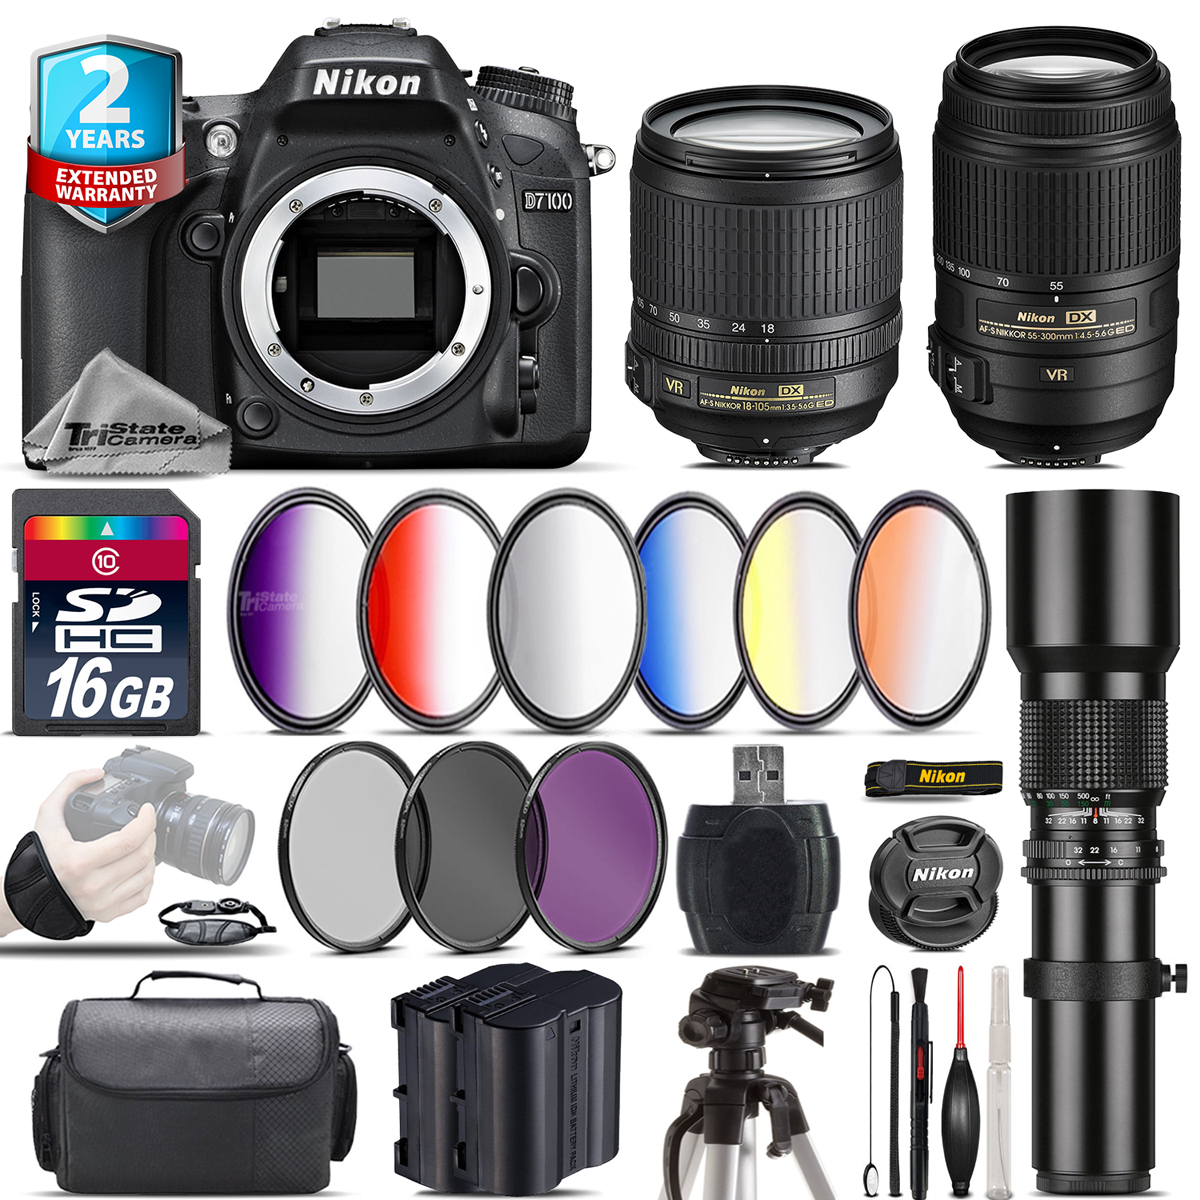 Nikon D7100 Dslr Afs 18 105mm Vr 55 250mm Stm Extra Battery Af S F 35 56g Ed Dx 16gb Kit